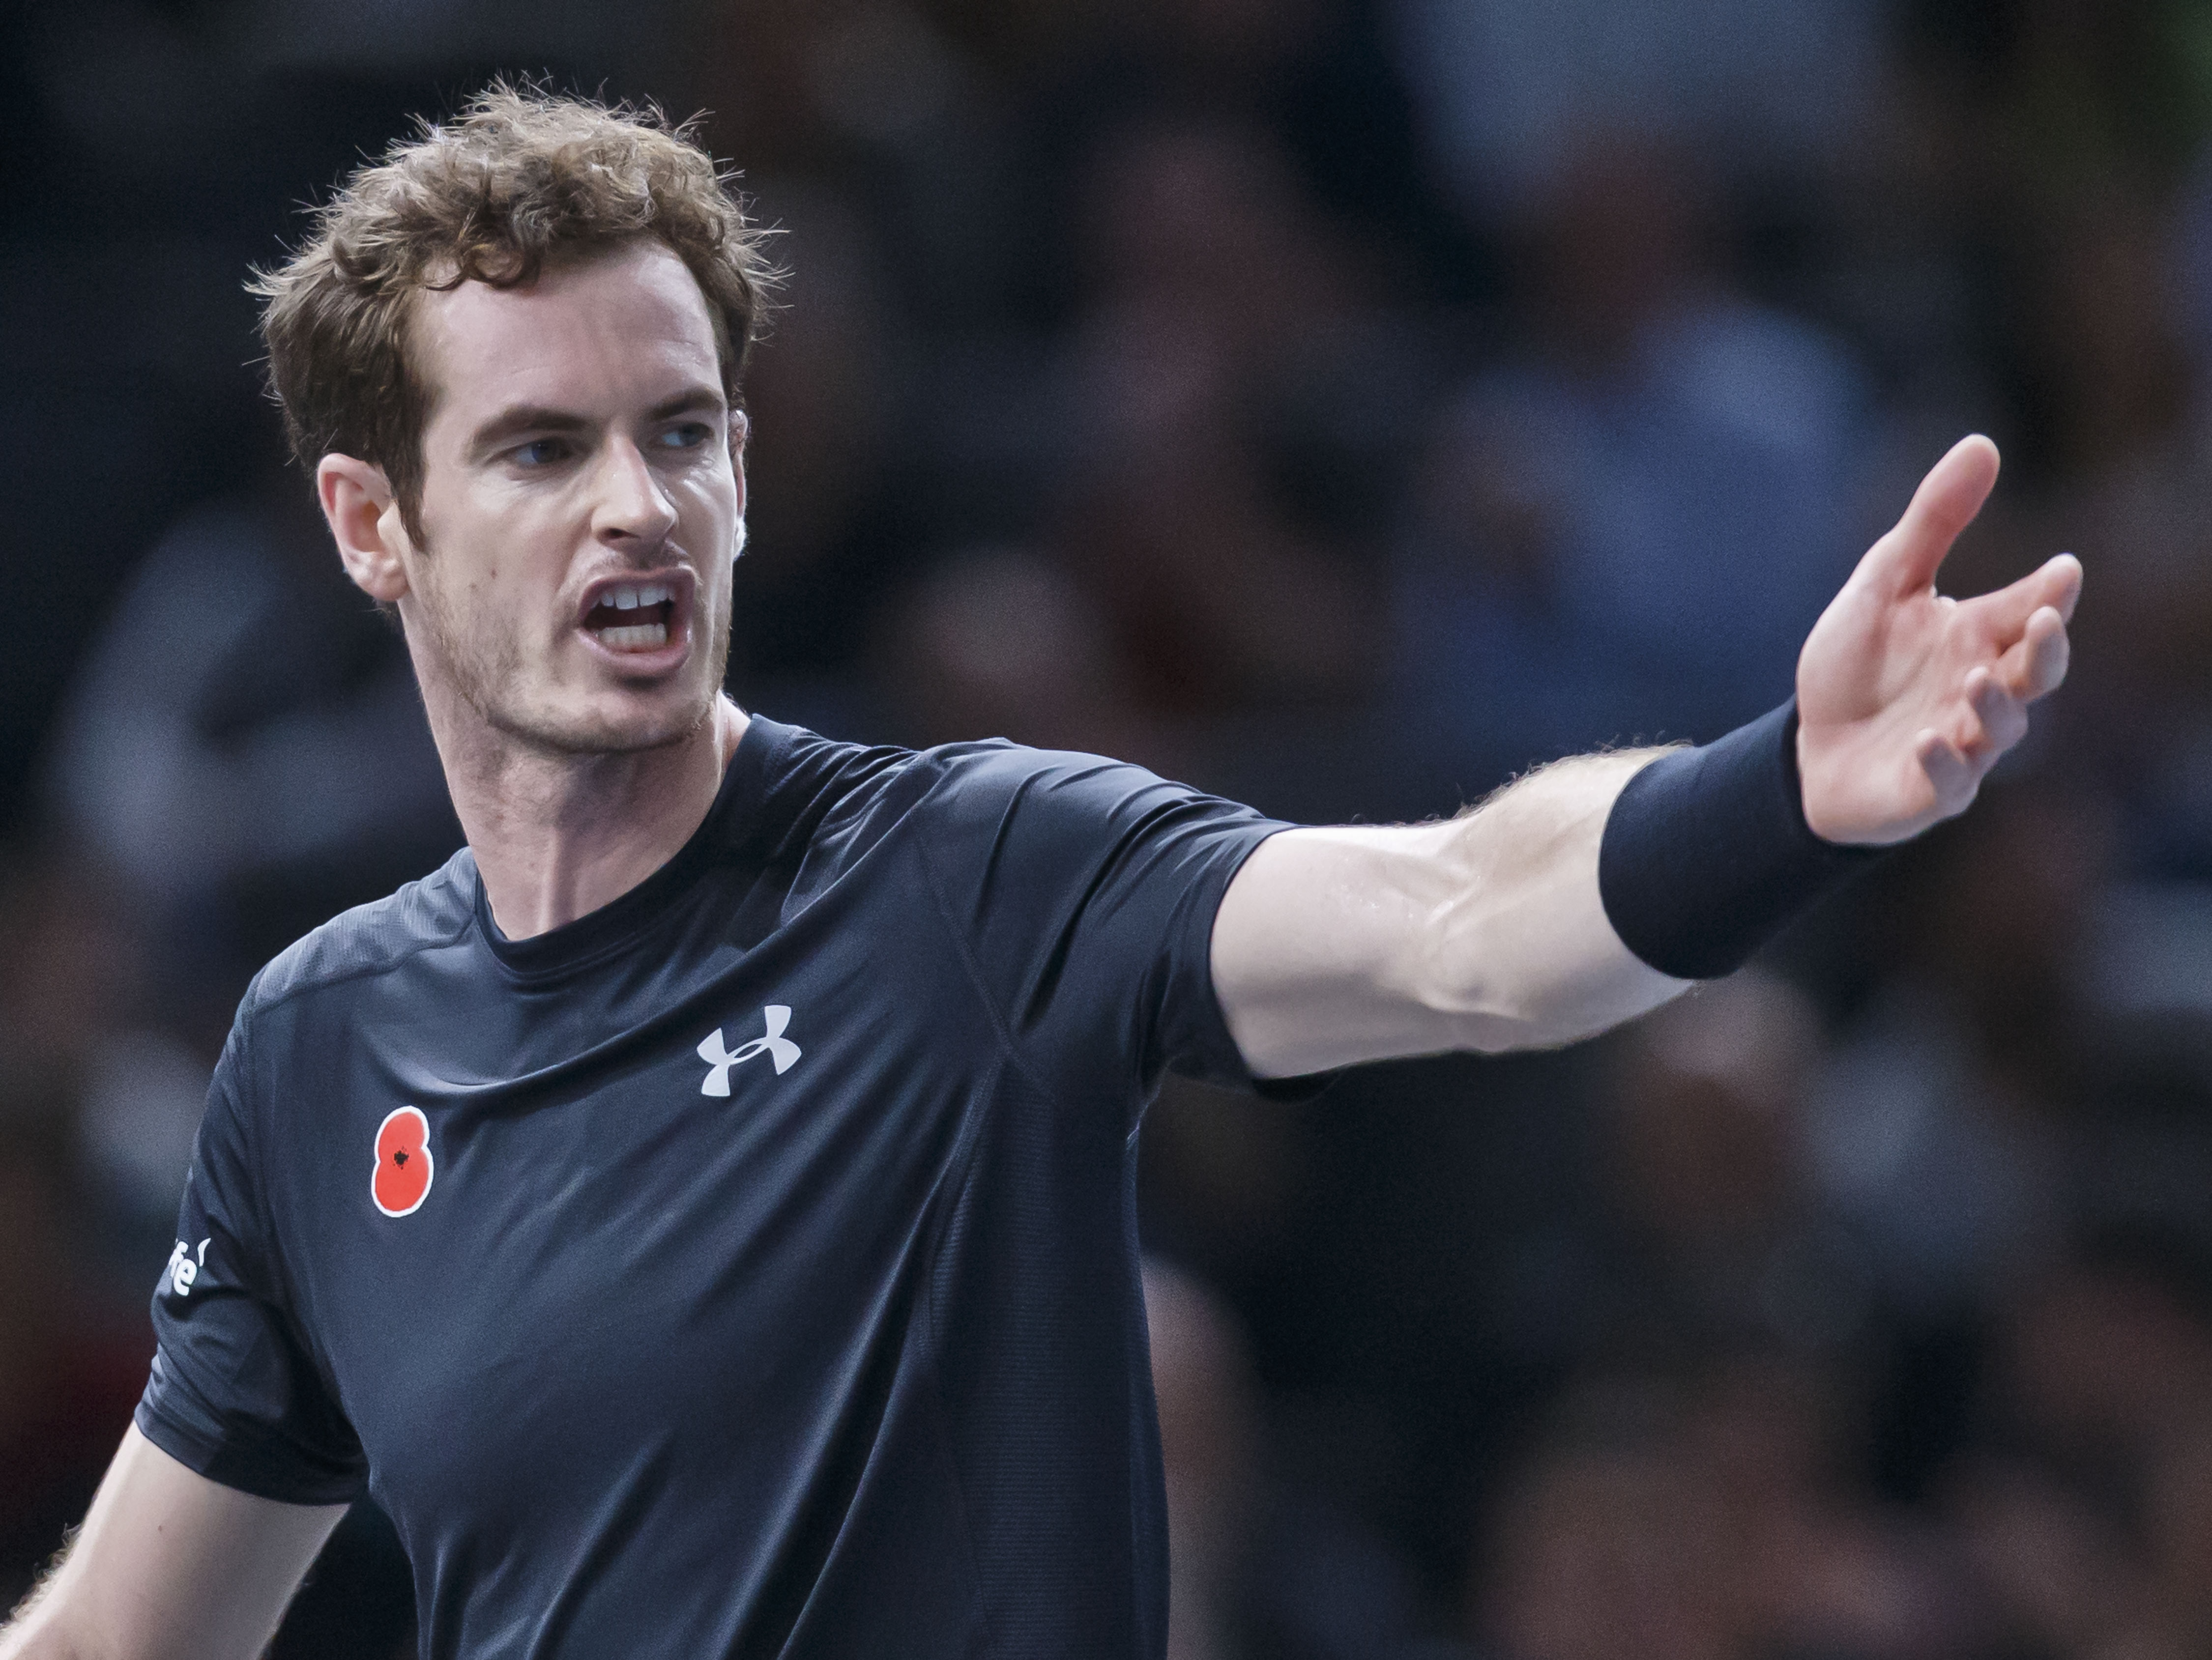 Britain's Andy Murray reacts after losing a point against France's Richard Gasquet during their quarterfinal match of the BNP Masters tennis tournament at the Paris Bercy Arena, in Paris, France, Friday, Nov. 6, 2015. Murray won 7-6, 3-6, 6-3. (AP Photo/M